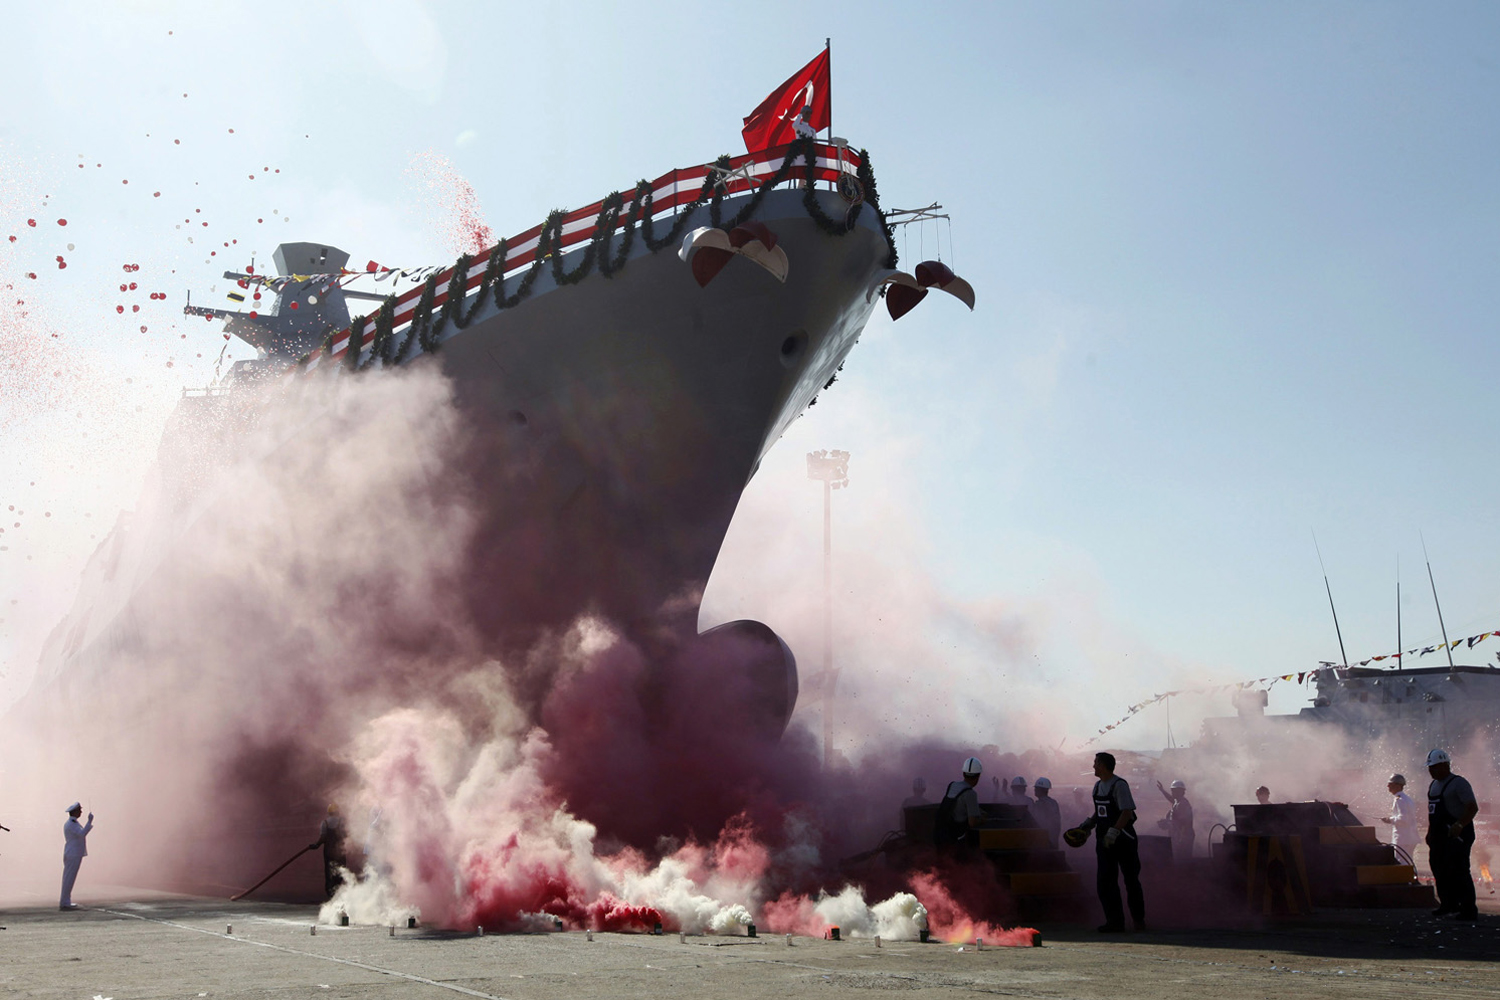 September 27, 2011. Workers and officers attend the launch for the second nationally designed combat ship TCSG Buyukada, at the Tuzla Naval shipyard in Istanbul.